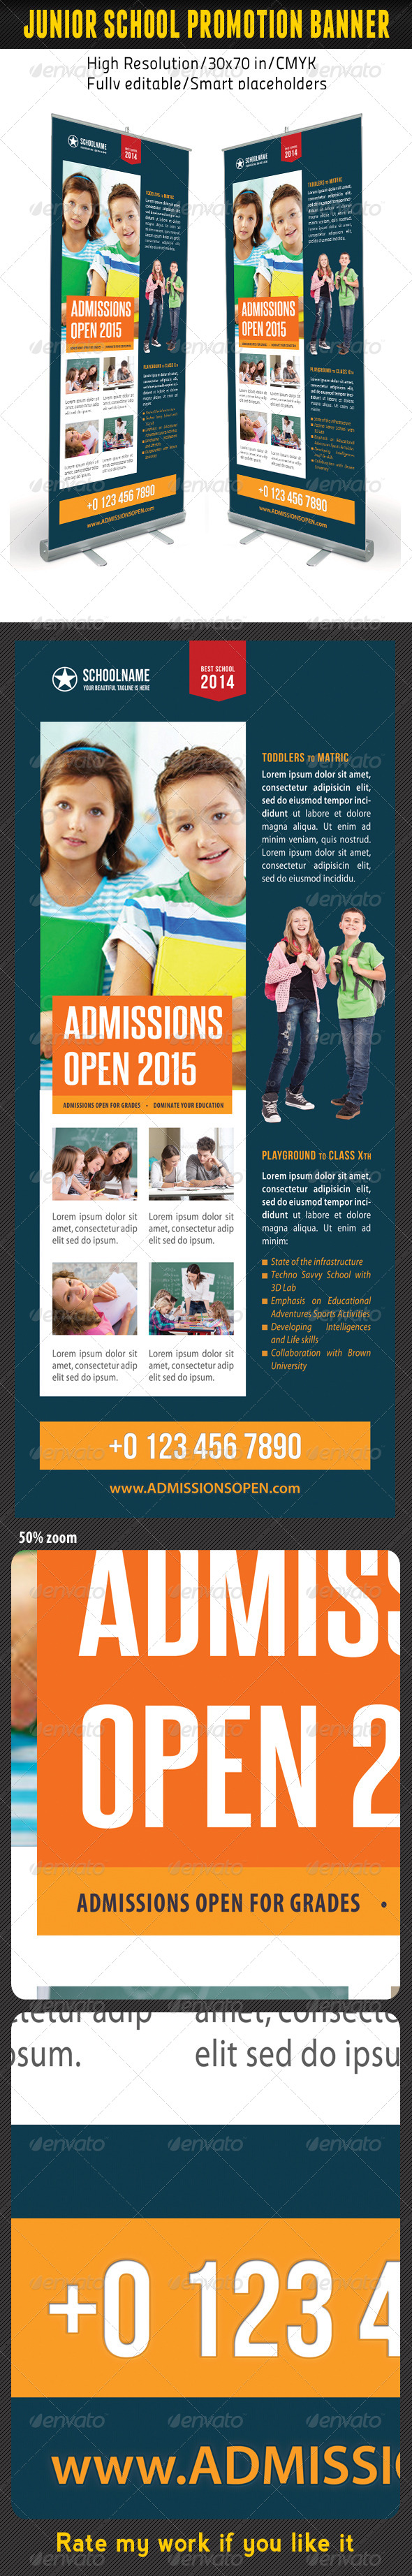 Junior School Promotion Banner Template 09 - Signage Print Templates